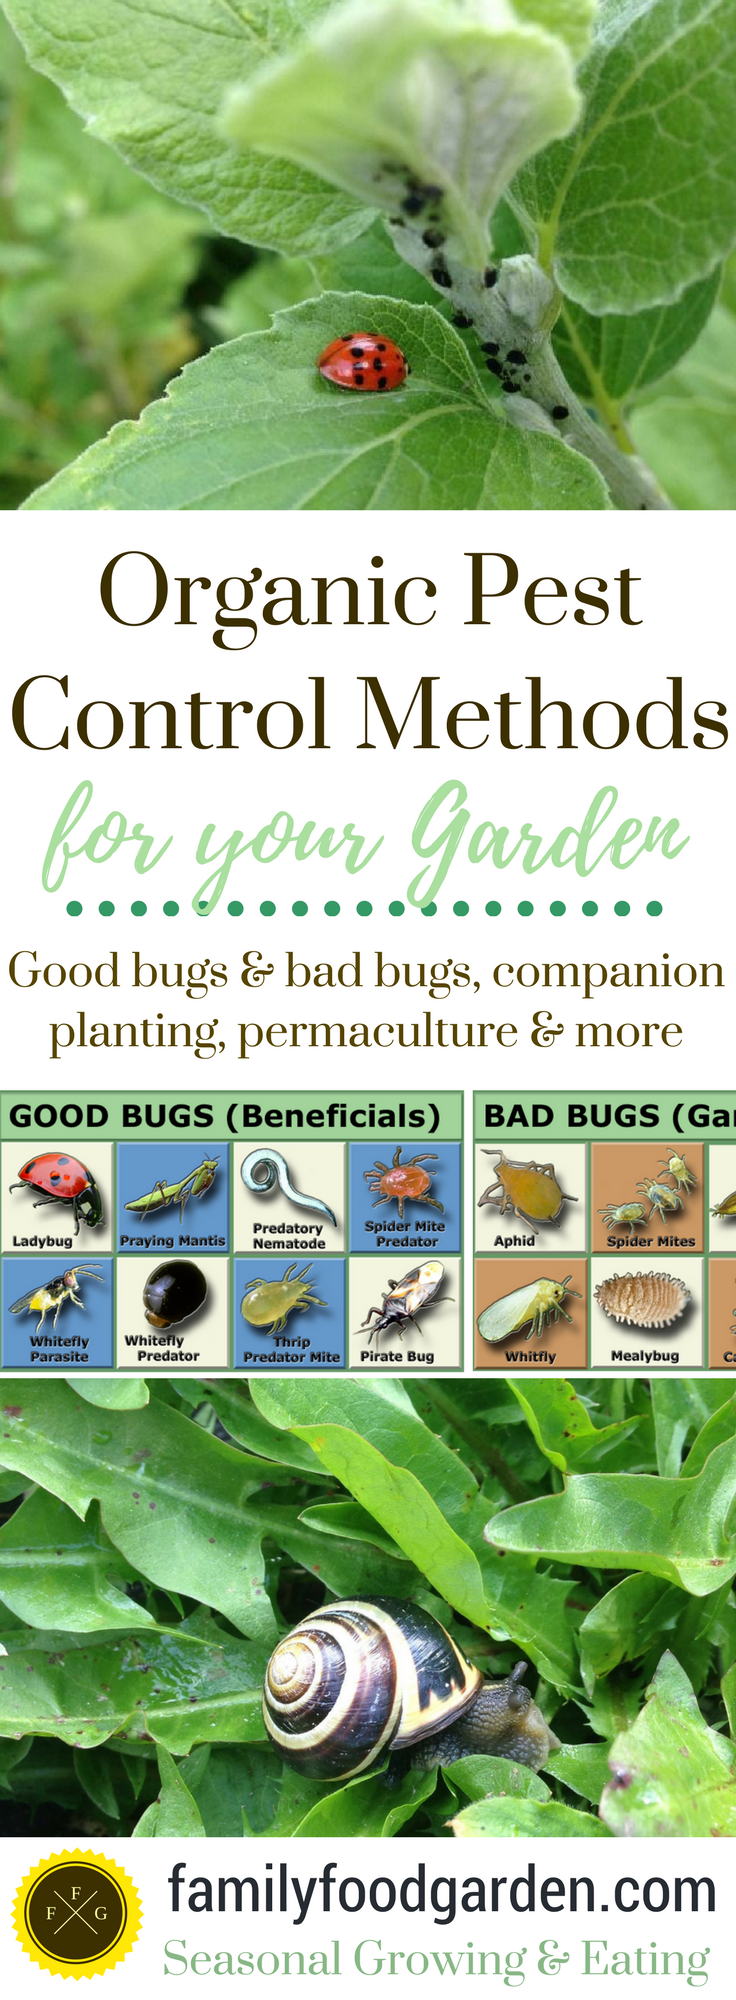 Organic Pest Control in your Garden Does organic pest-free gardening sound like an unattainable dream? To many gardeners it might, but achieving organic pest control is all about the working ecosystem. If your garden is not an ecosystem and just lovely rows of weeded monoculture crops, the bad bugs tend to thrive and be more of a nuisance. I've written a long post... Pest Control in your Garden Does organic pest-free gardening sound like an unattainable dream? To many gardeners it might, but achieving organic pest controlisall about the working ecosystem. If your garden is not an ecosystem and just lovely rows of weeded monoculture crops, the bad bugs tend to thrive and be more of a nuisance